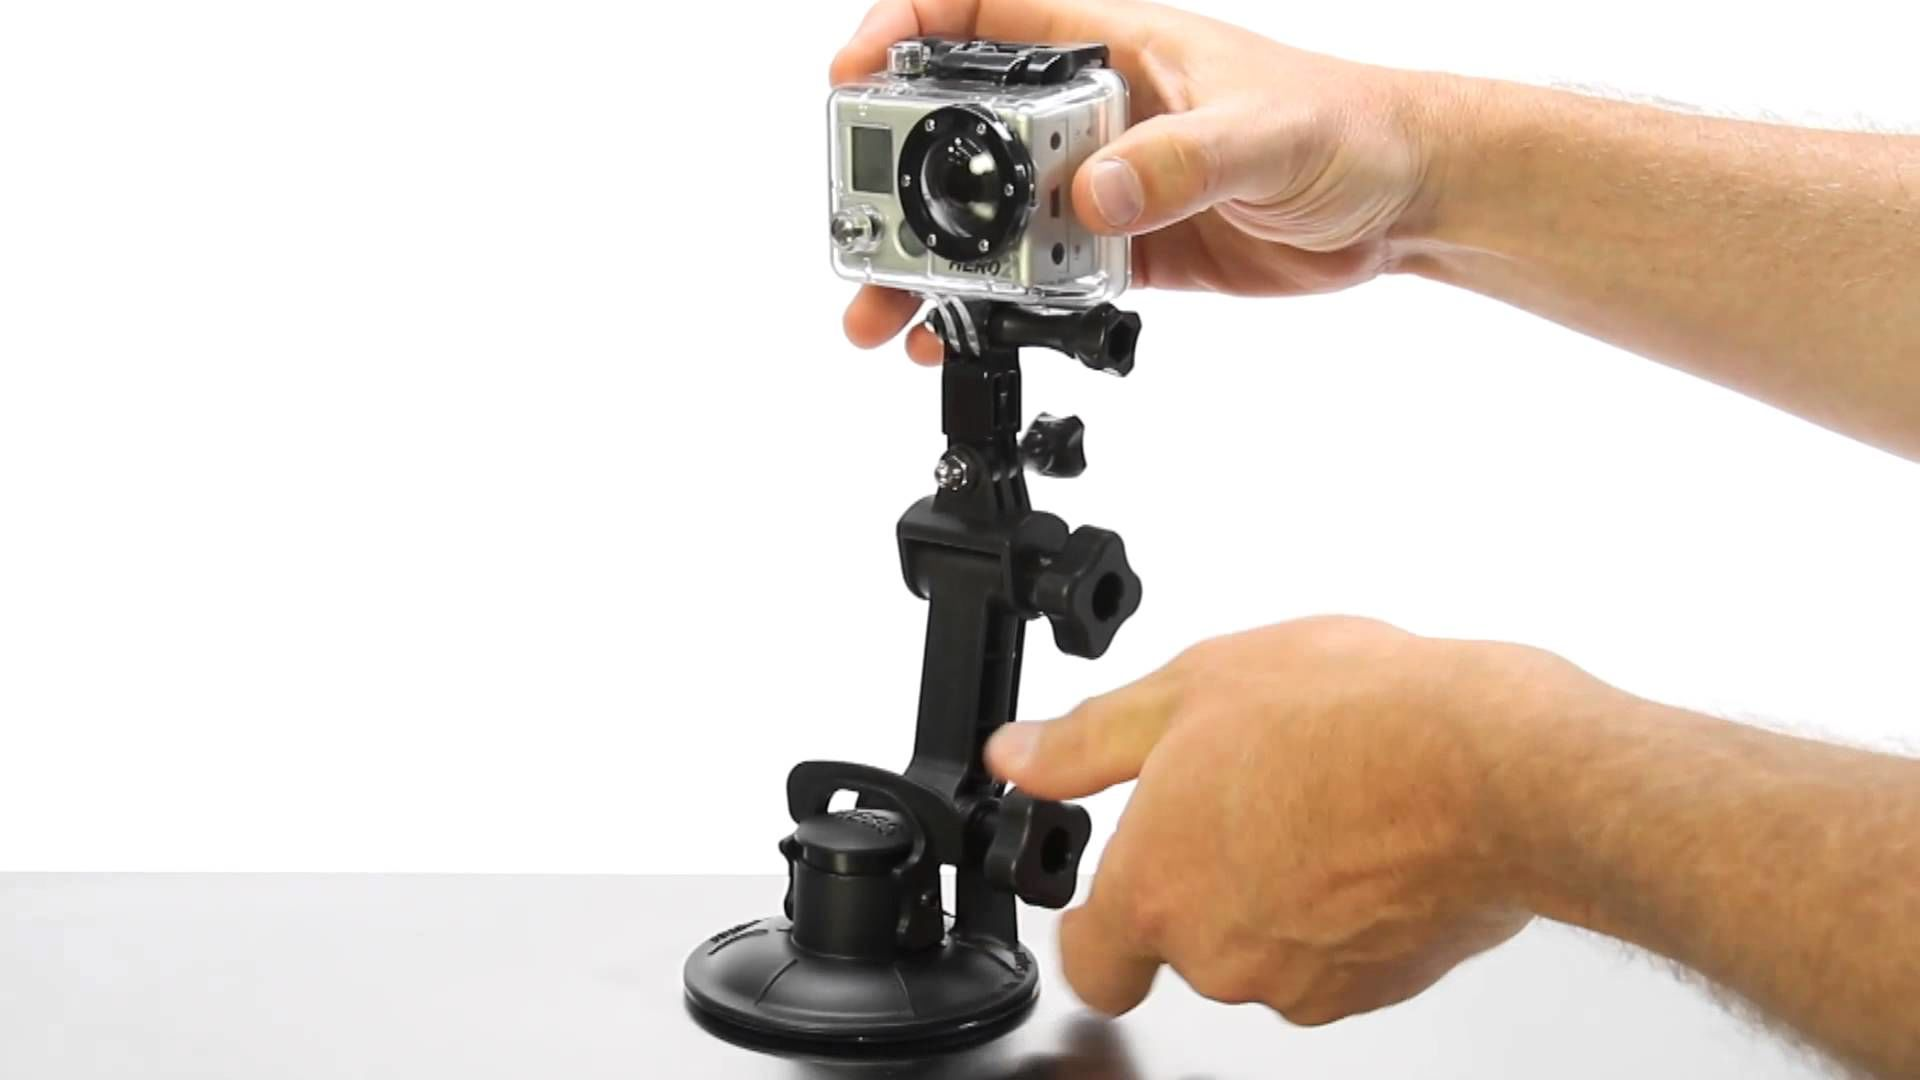 All About the GoPro IPO